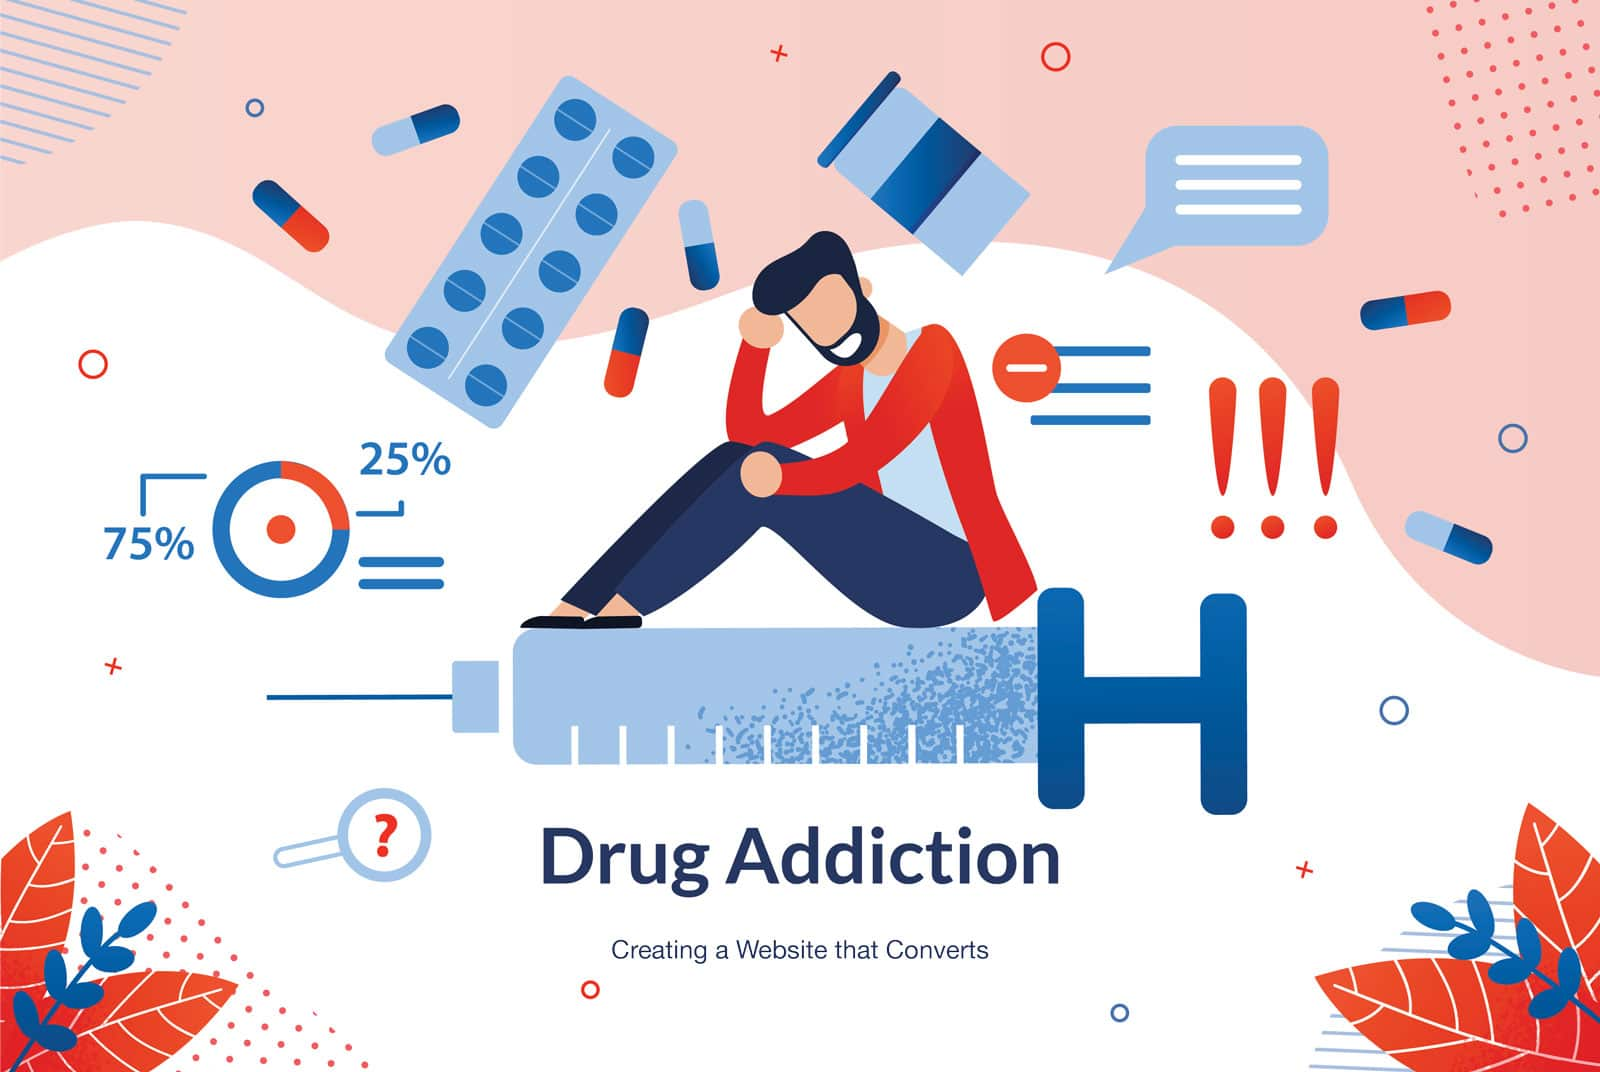 Addiction Treatment Facility Websites: Creating a Website that Converts